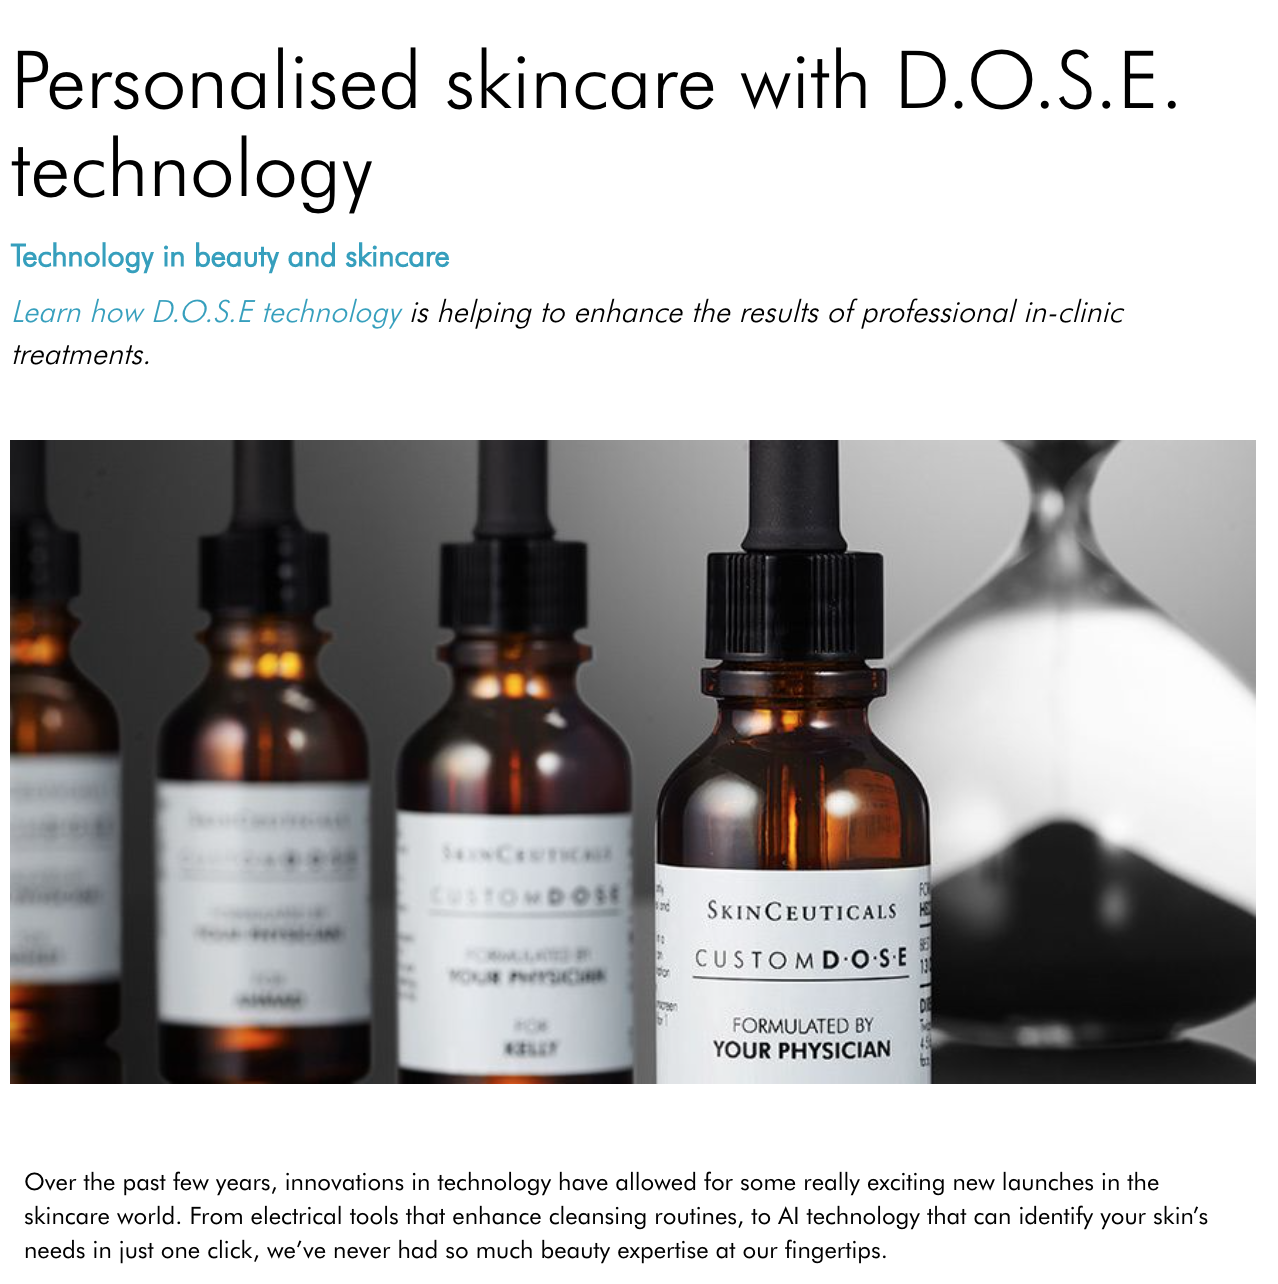 Personalised skincare with D.O.S.E technology: SKINCEUTICALS